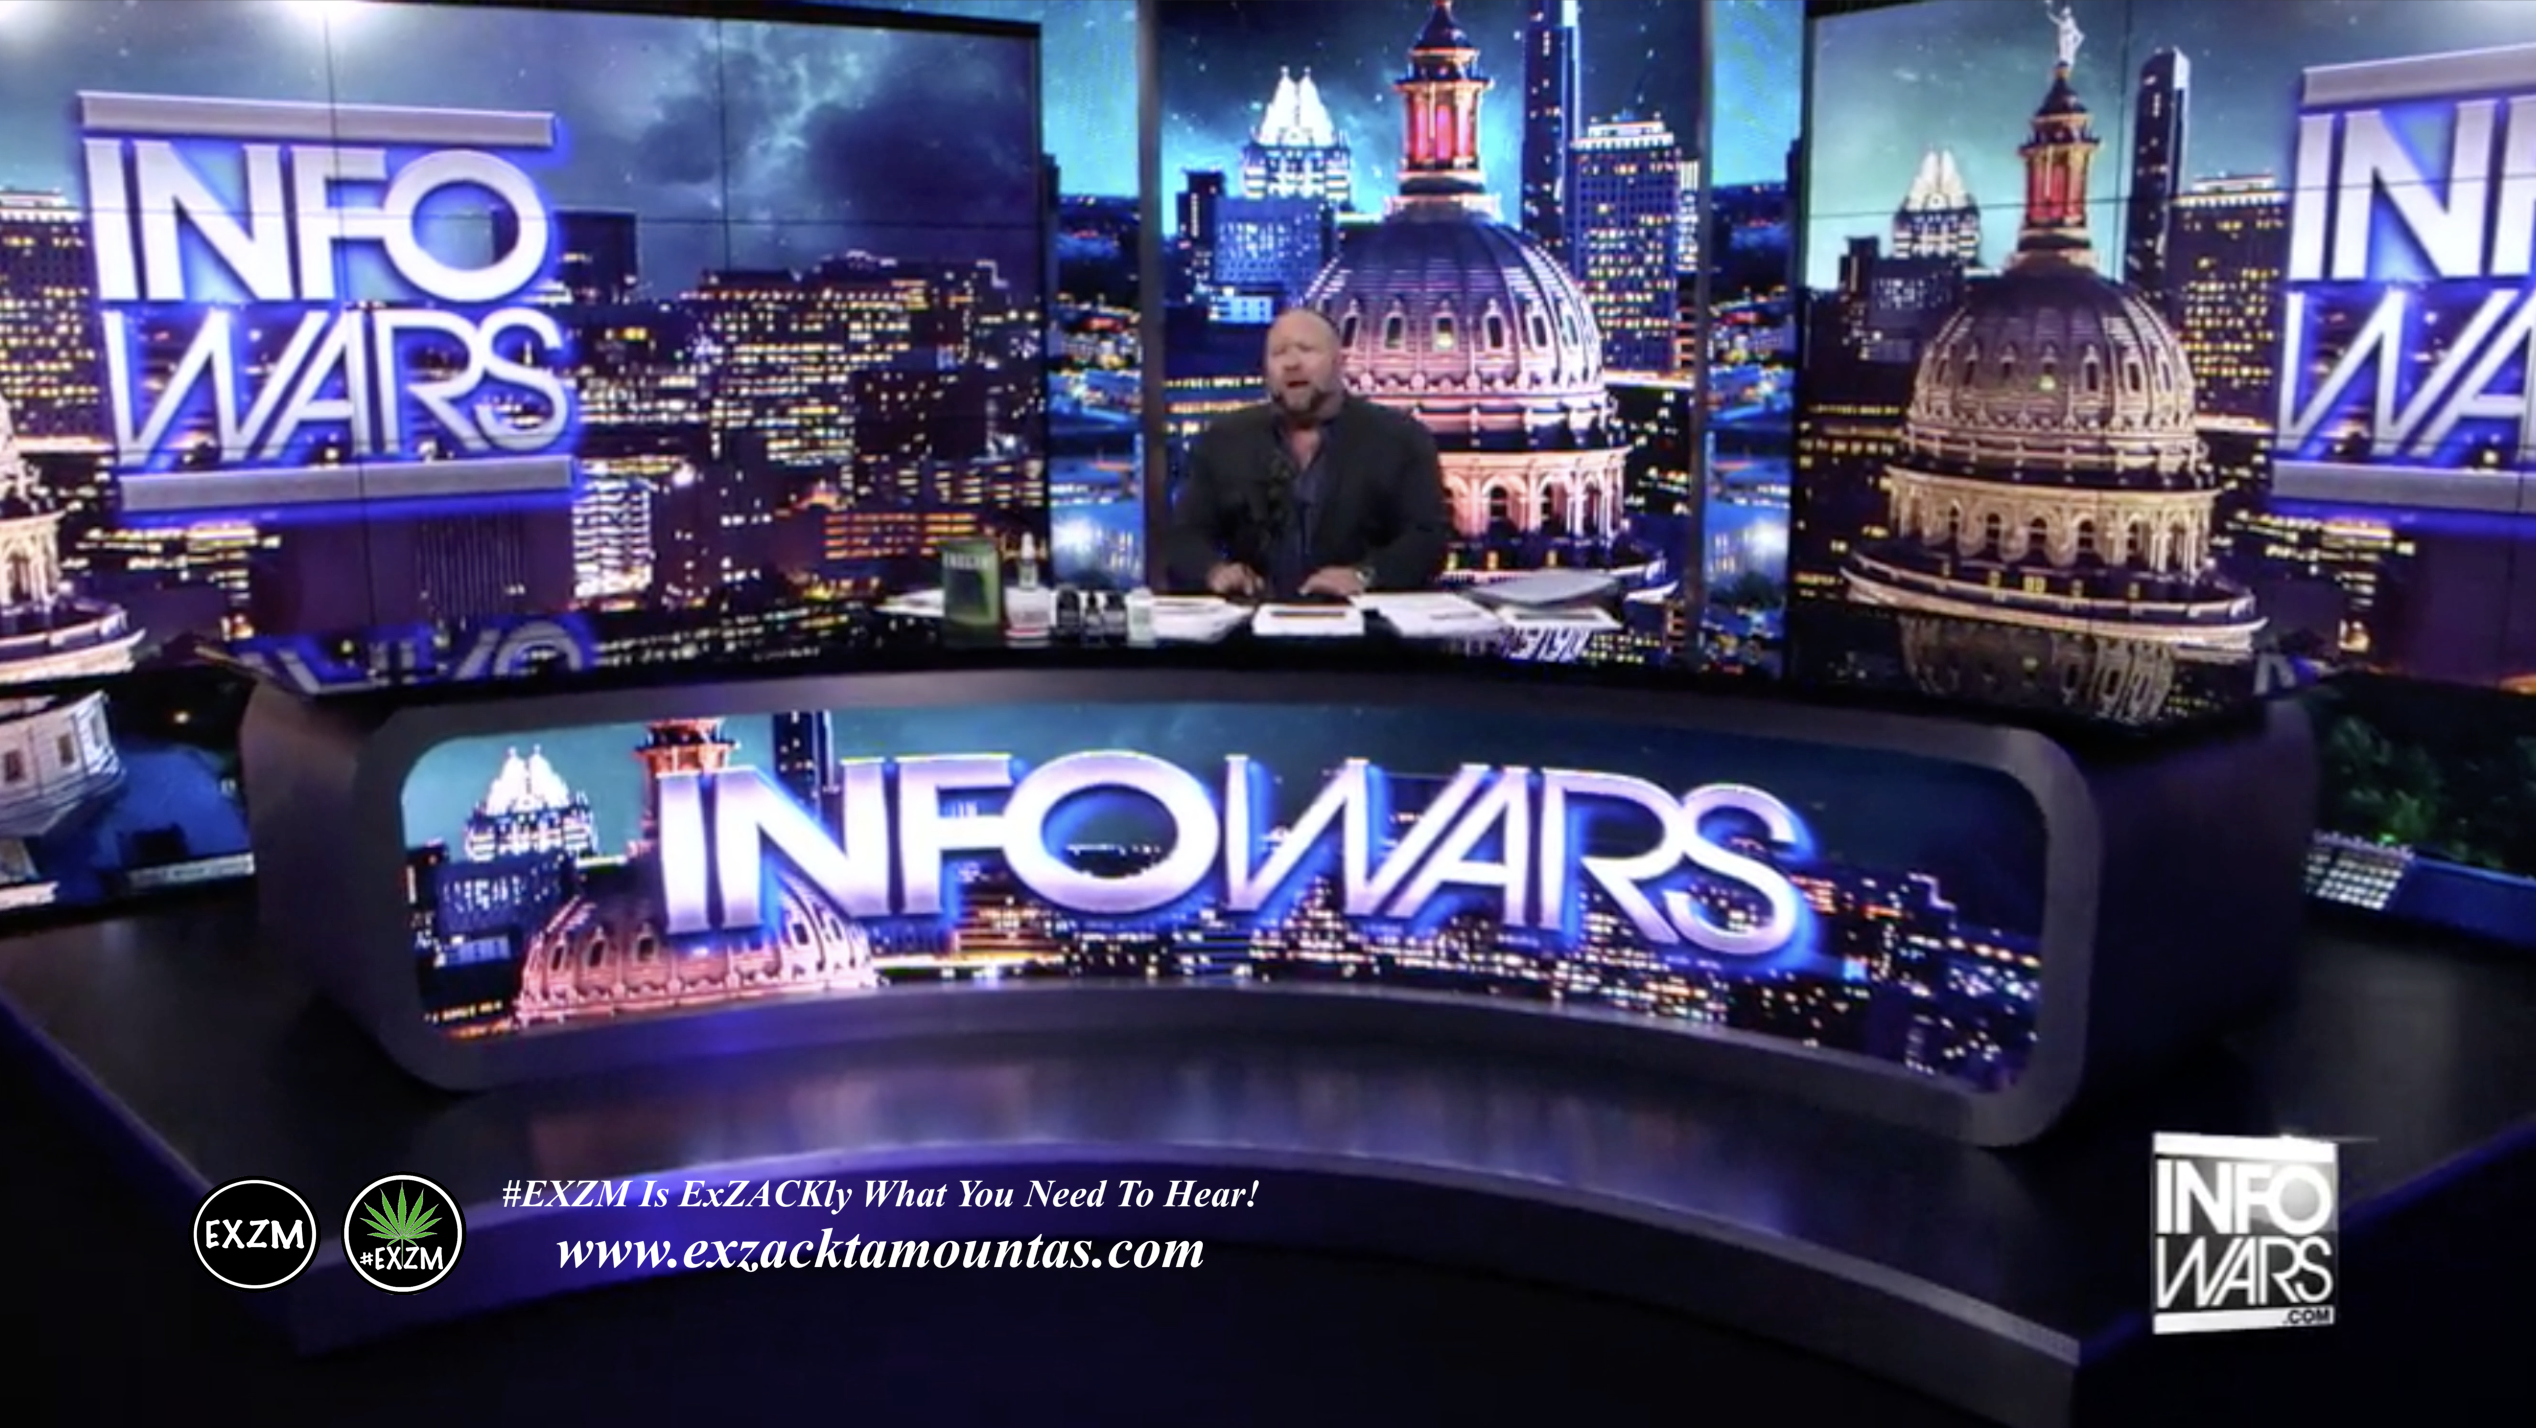 Alex Jones Live Infowars Studio EXZM Zack Mount April 19th 2021 copy